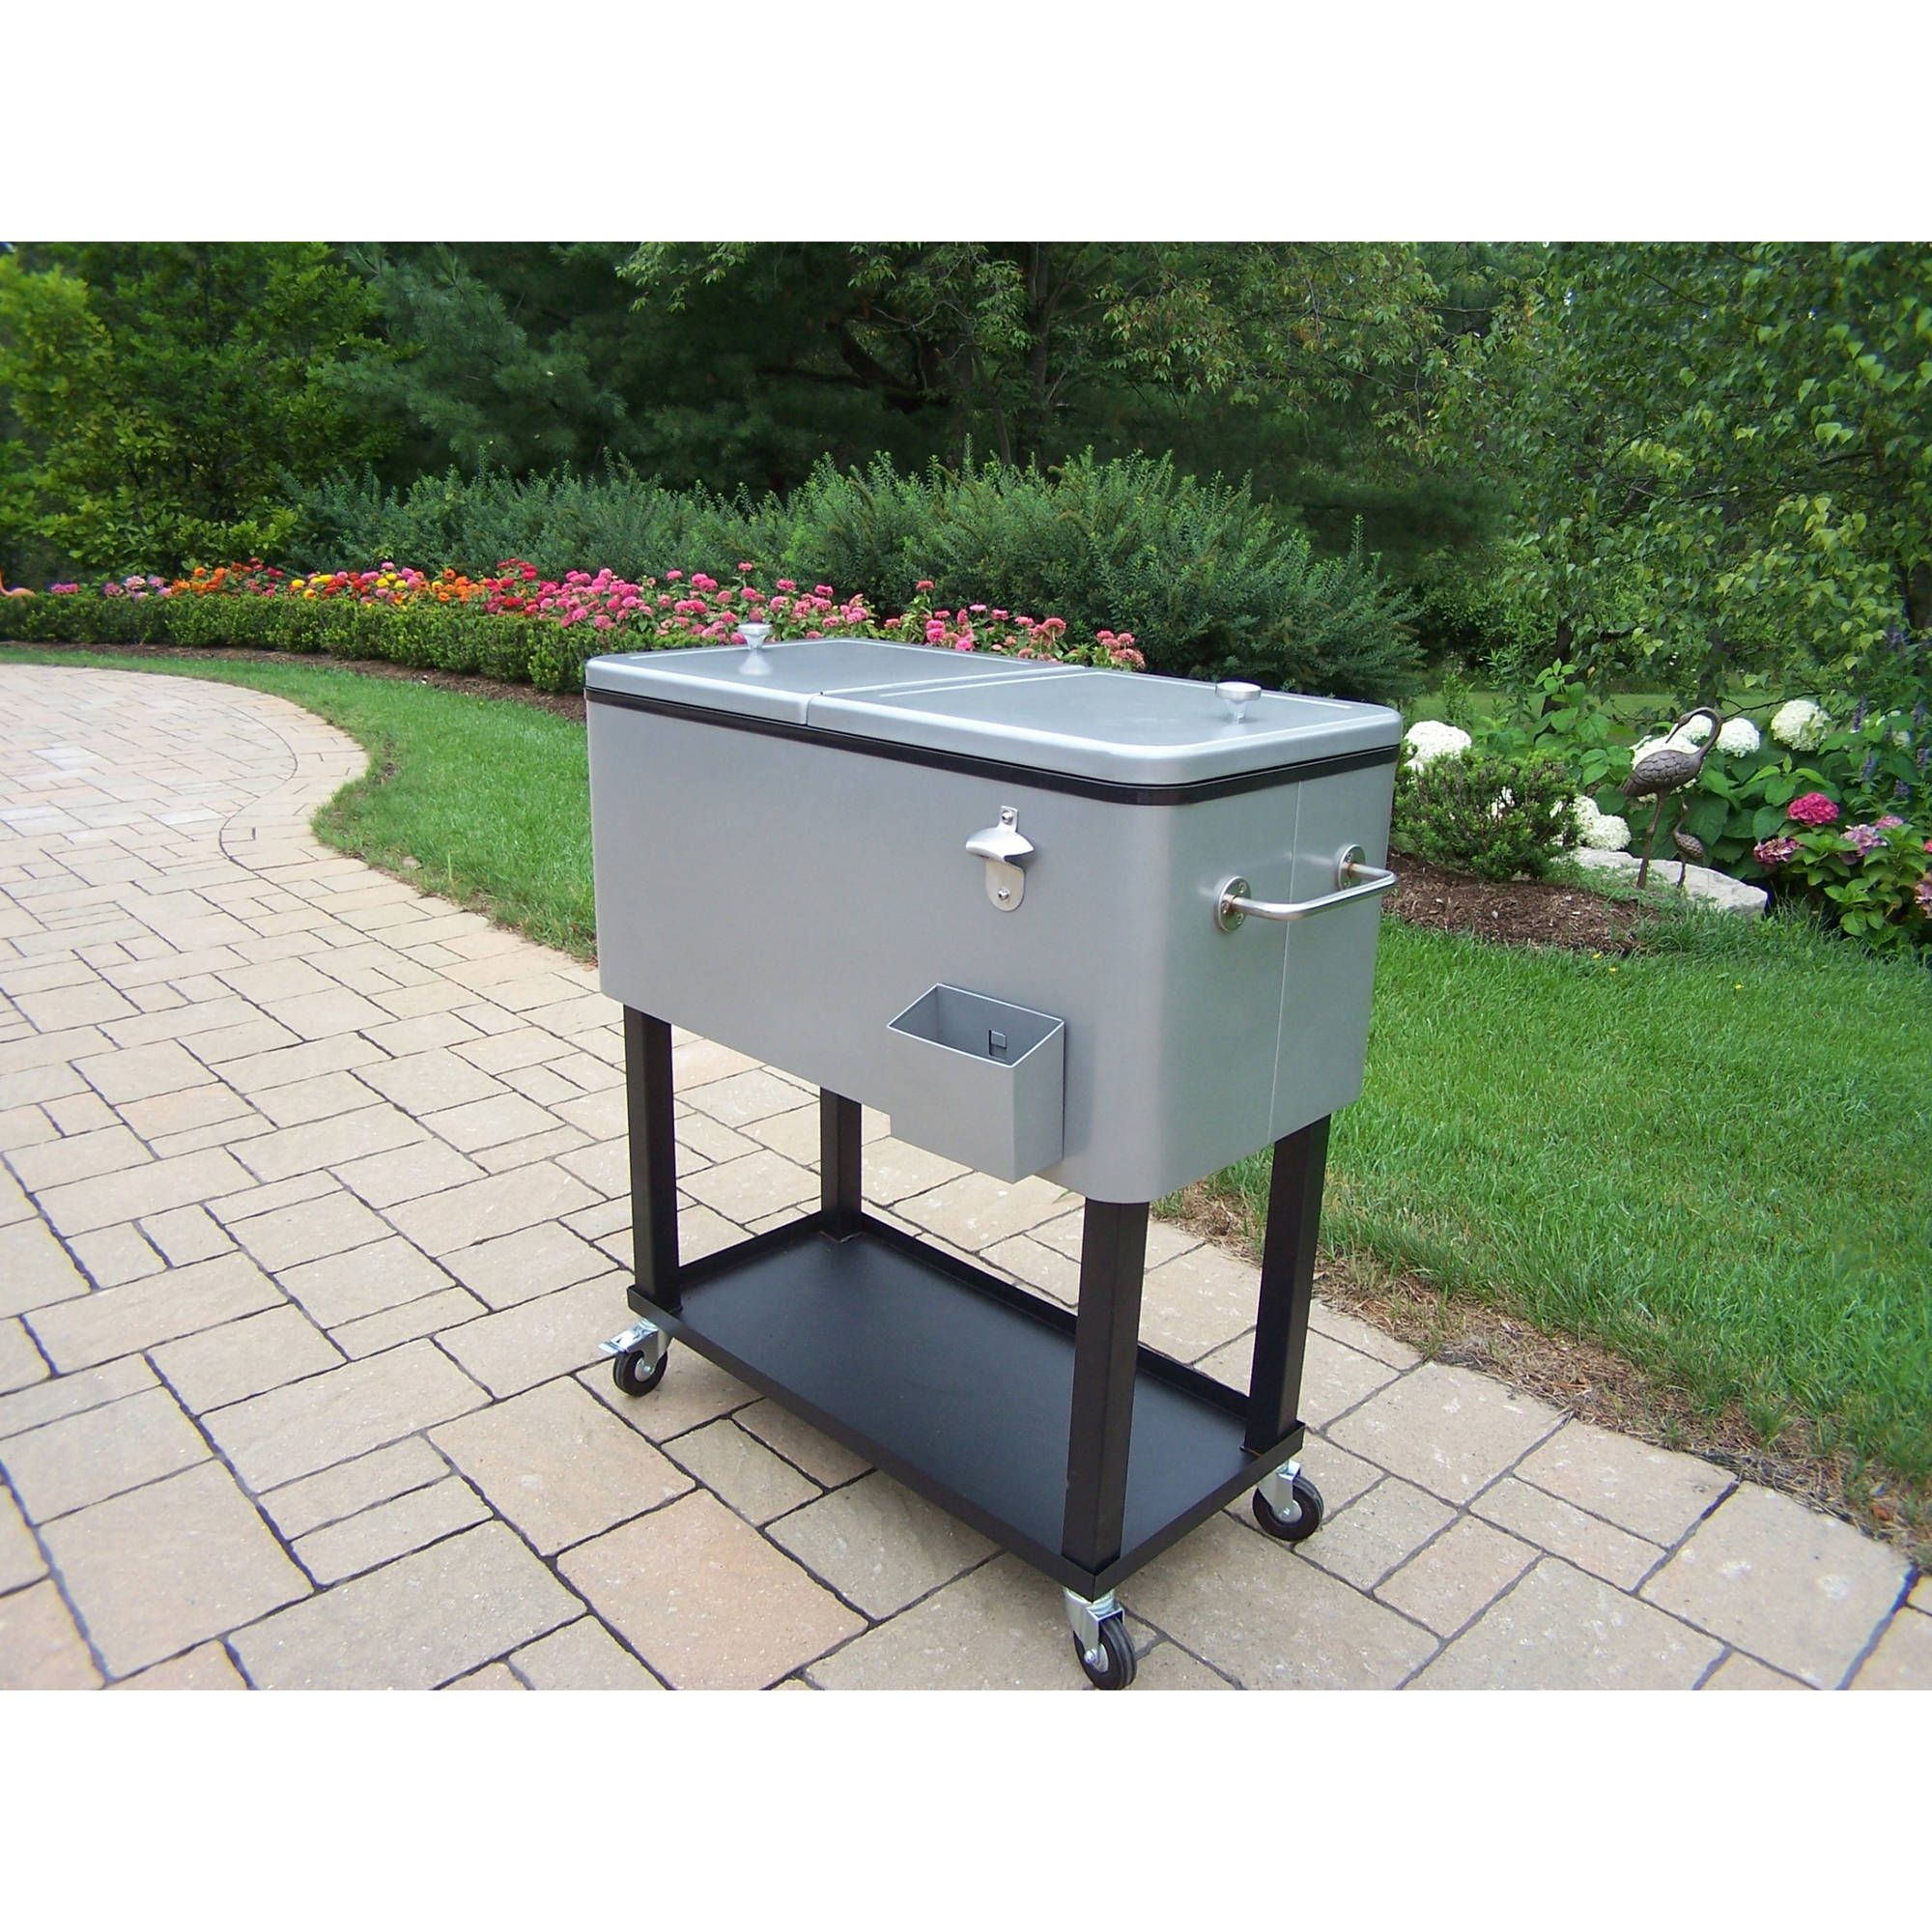 The Oakland 80 Qt. Steel Patio Cooler Cart Will Make An Elegant Addition To